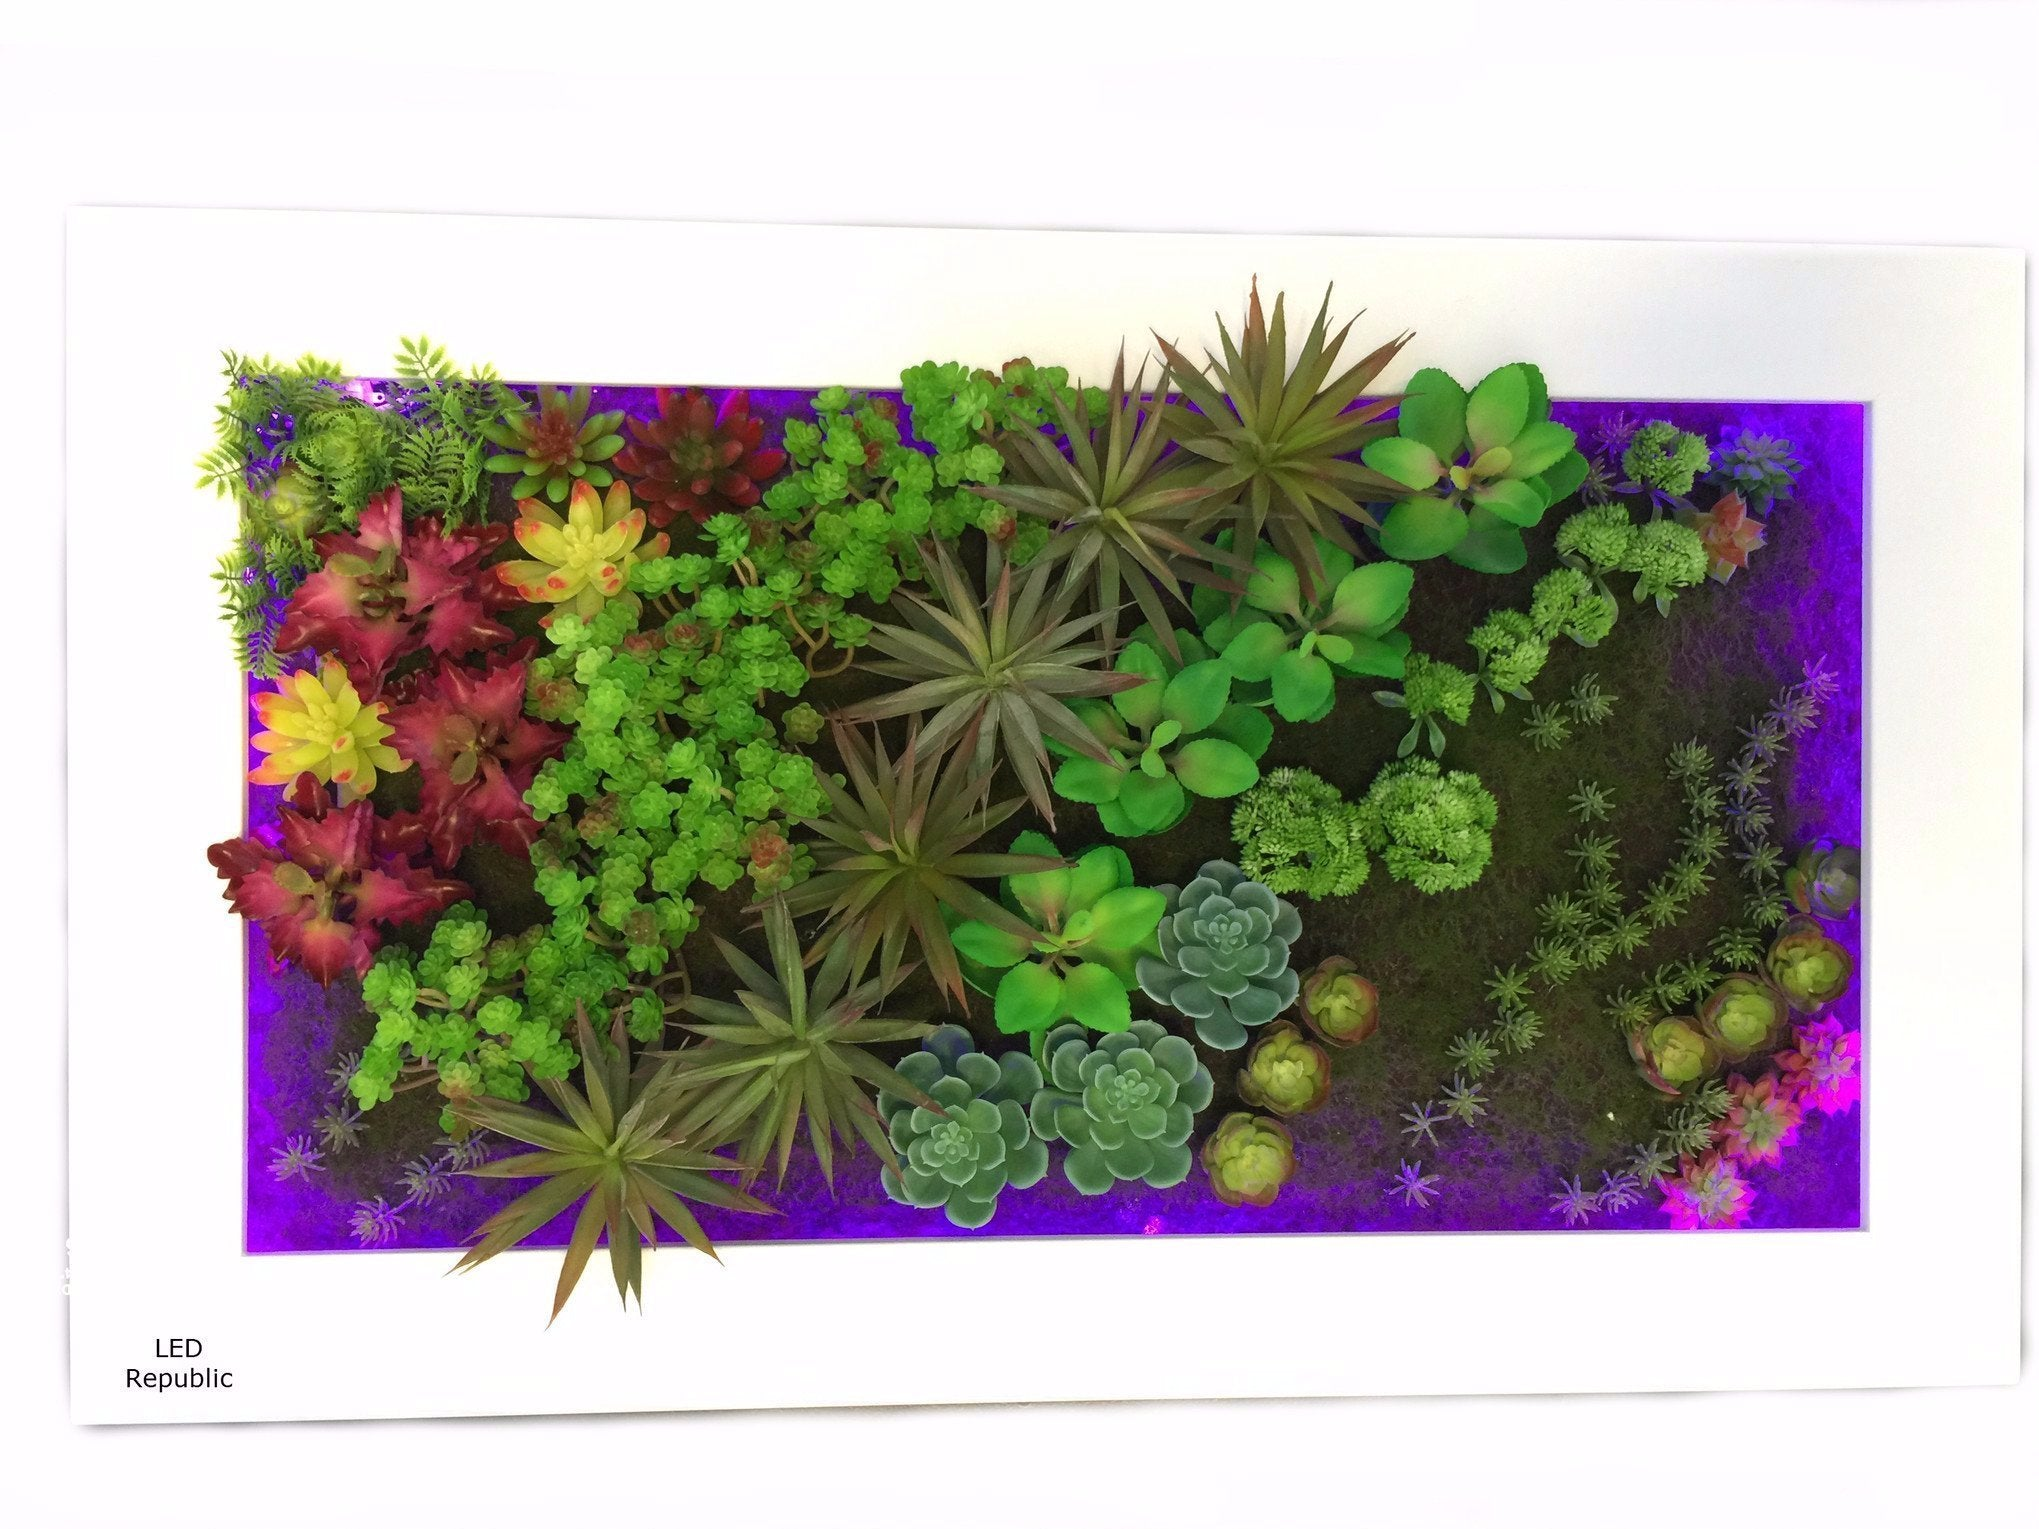 HISUN LED 3D Artificial Plant Simulation Flower Frame Wall Decor Home Garden Wall Hanging Flower